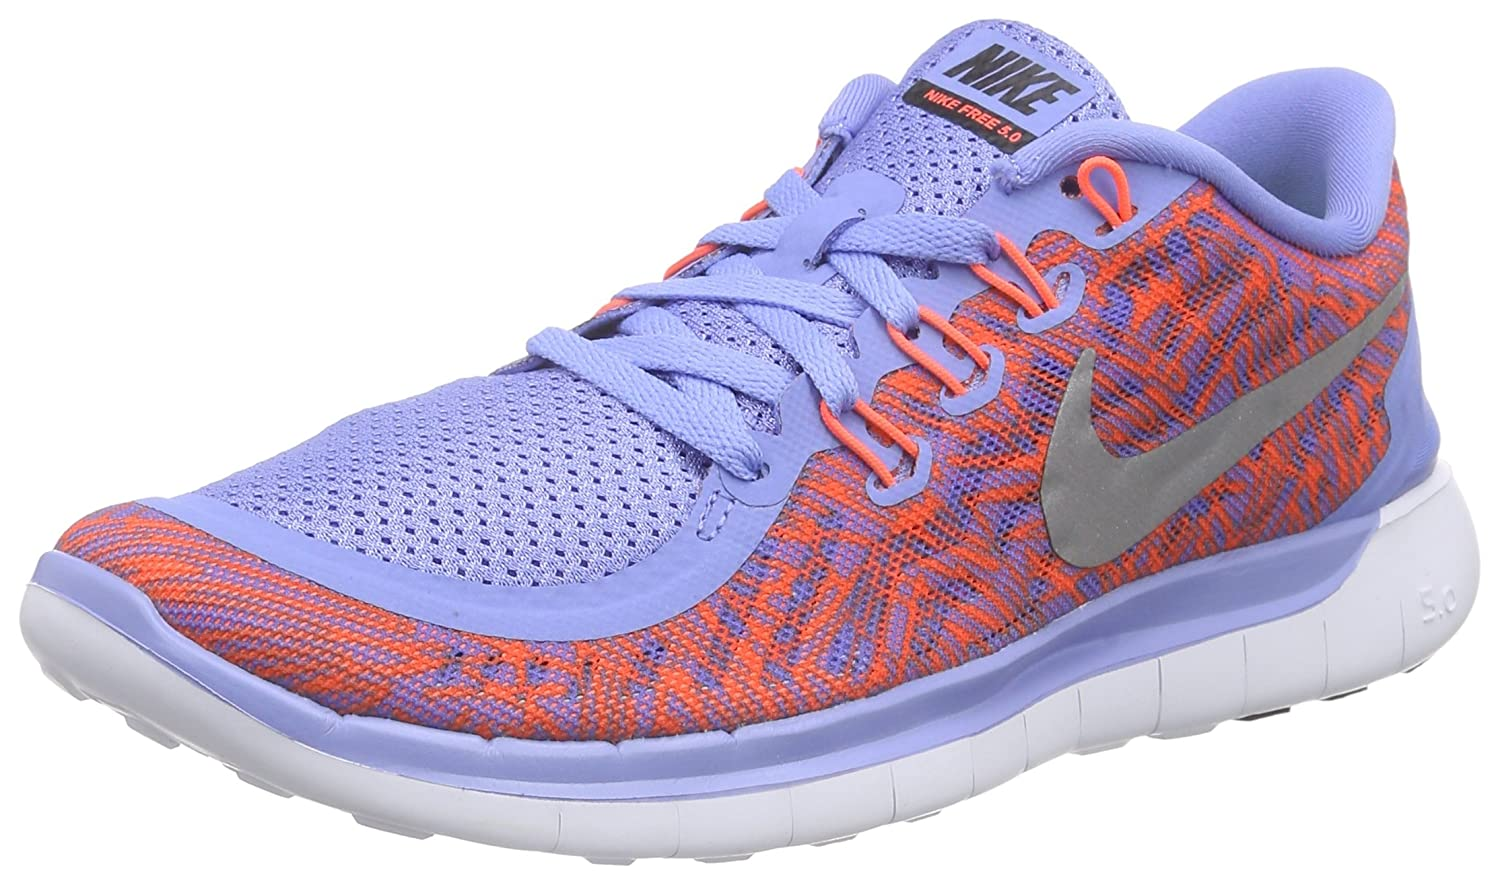 buy popular d63b9 8edd5 NIKE Free 5.0 Print Sz 6 Womens Running Shoes Blue New in Box